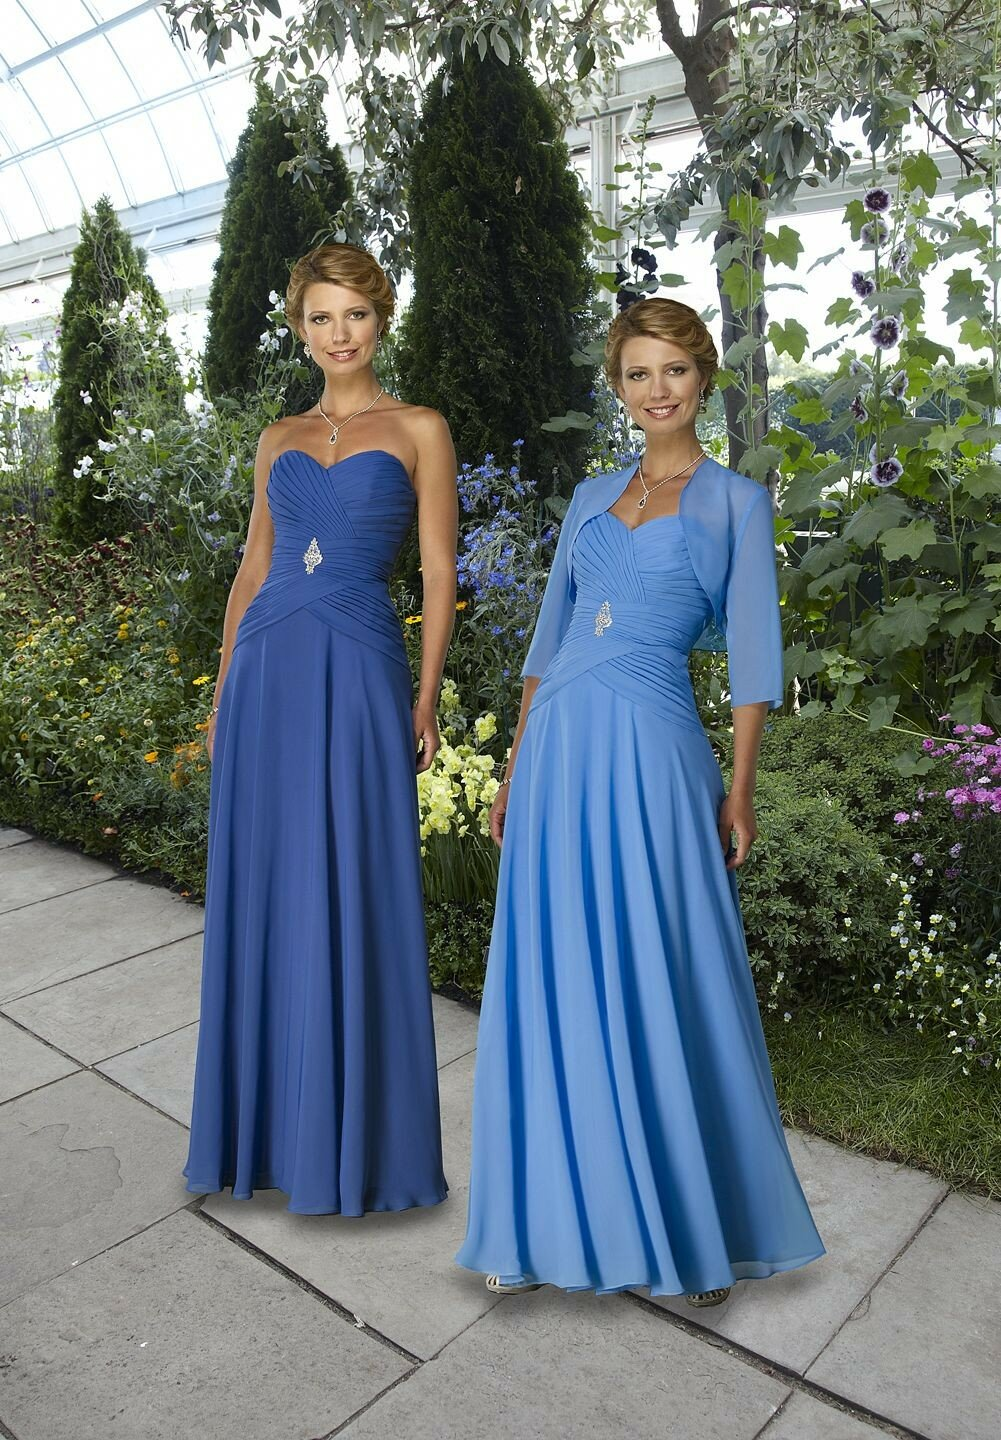 Summer wedding mother of the bride dresses photo 5 for Summer wedding mother of the bride dresses